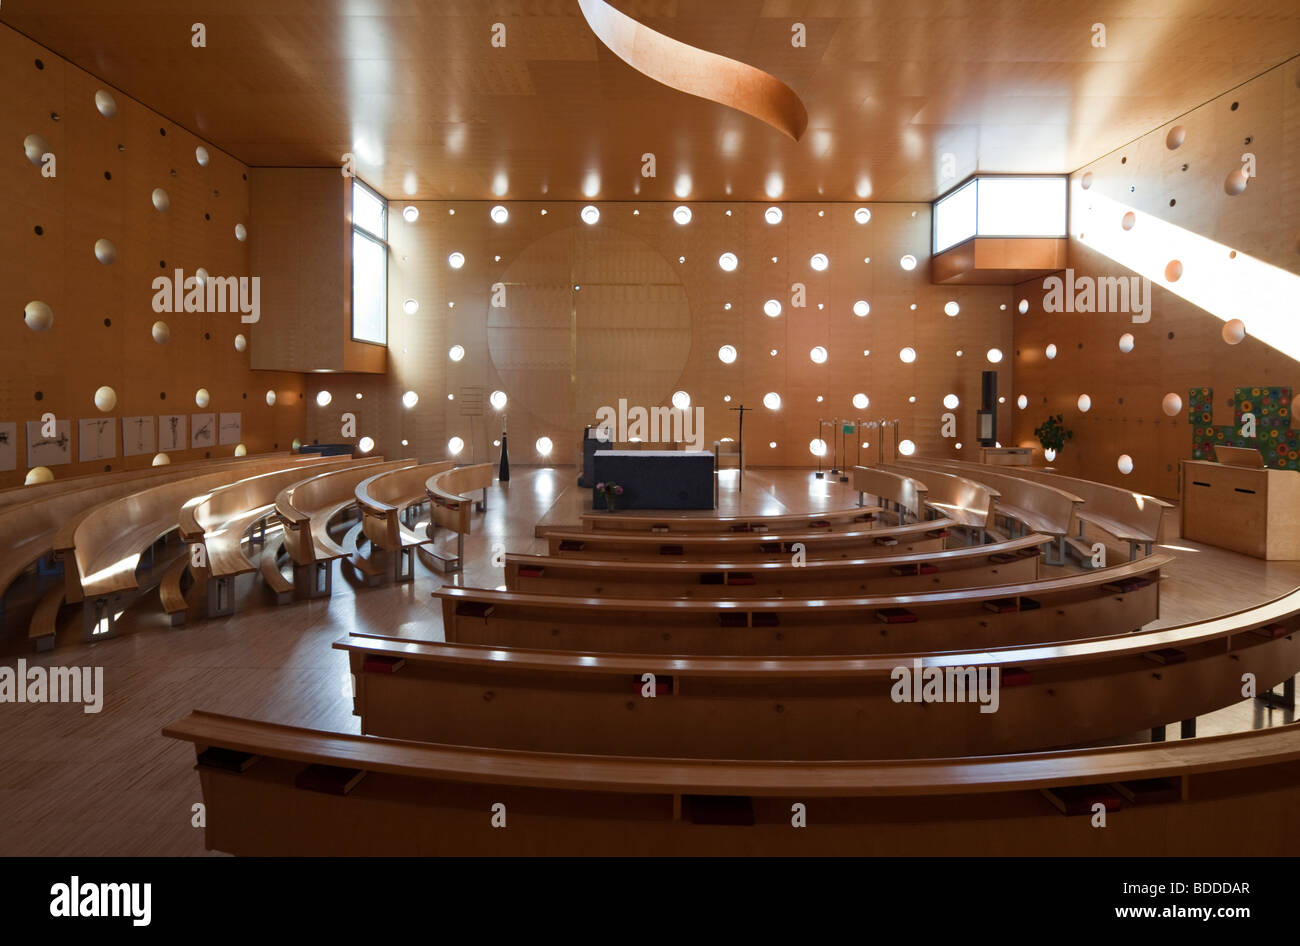 Donau City Church (Donaucitykirche, Christus, Hoffnung der Welt) (Christ, Hope of the World), Vienna, Austria - Stock Image